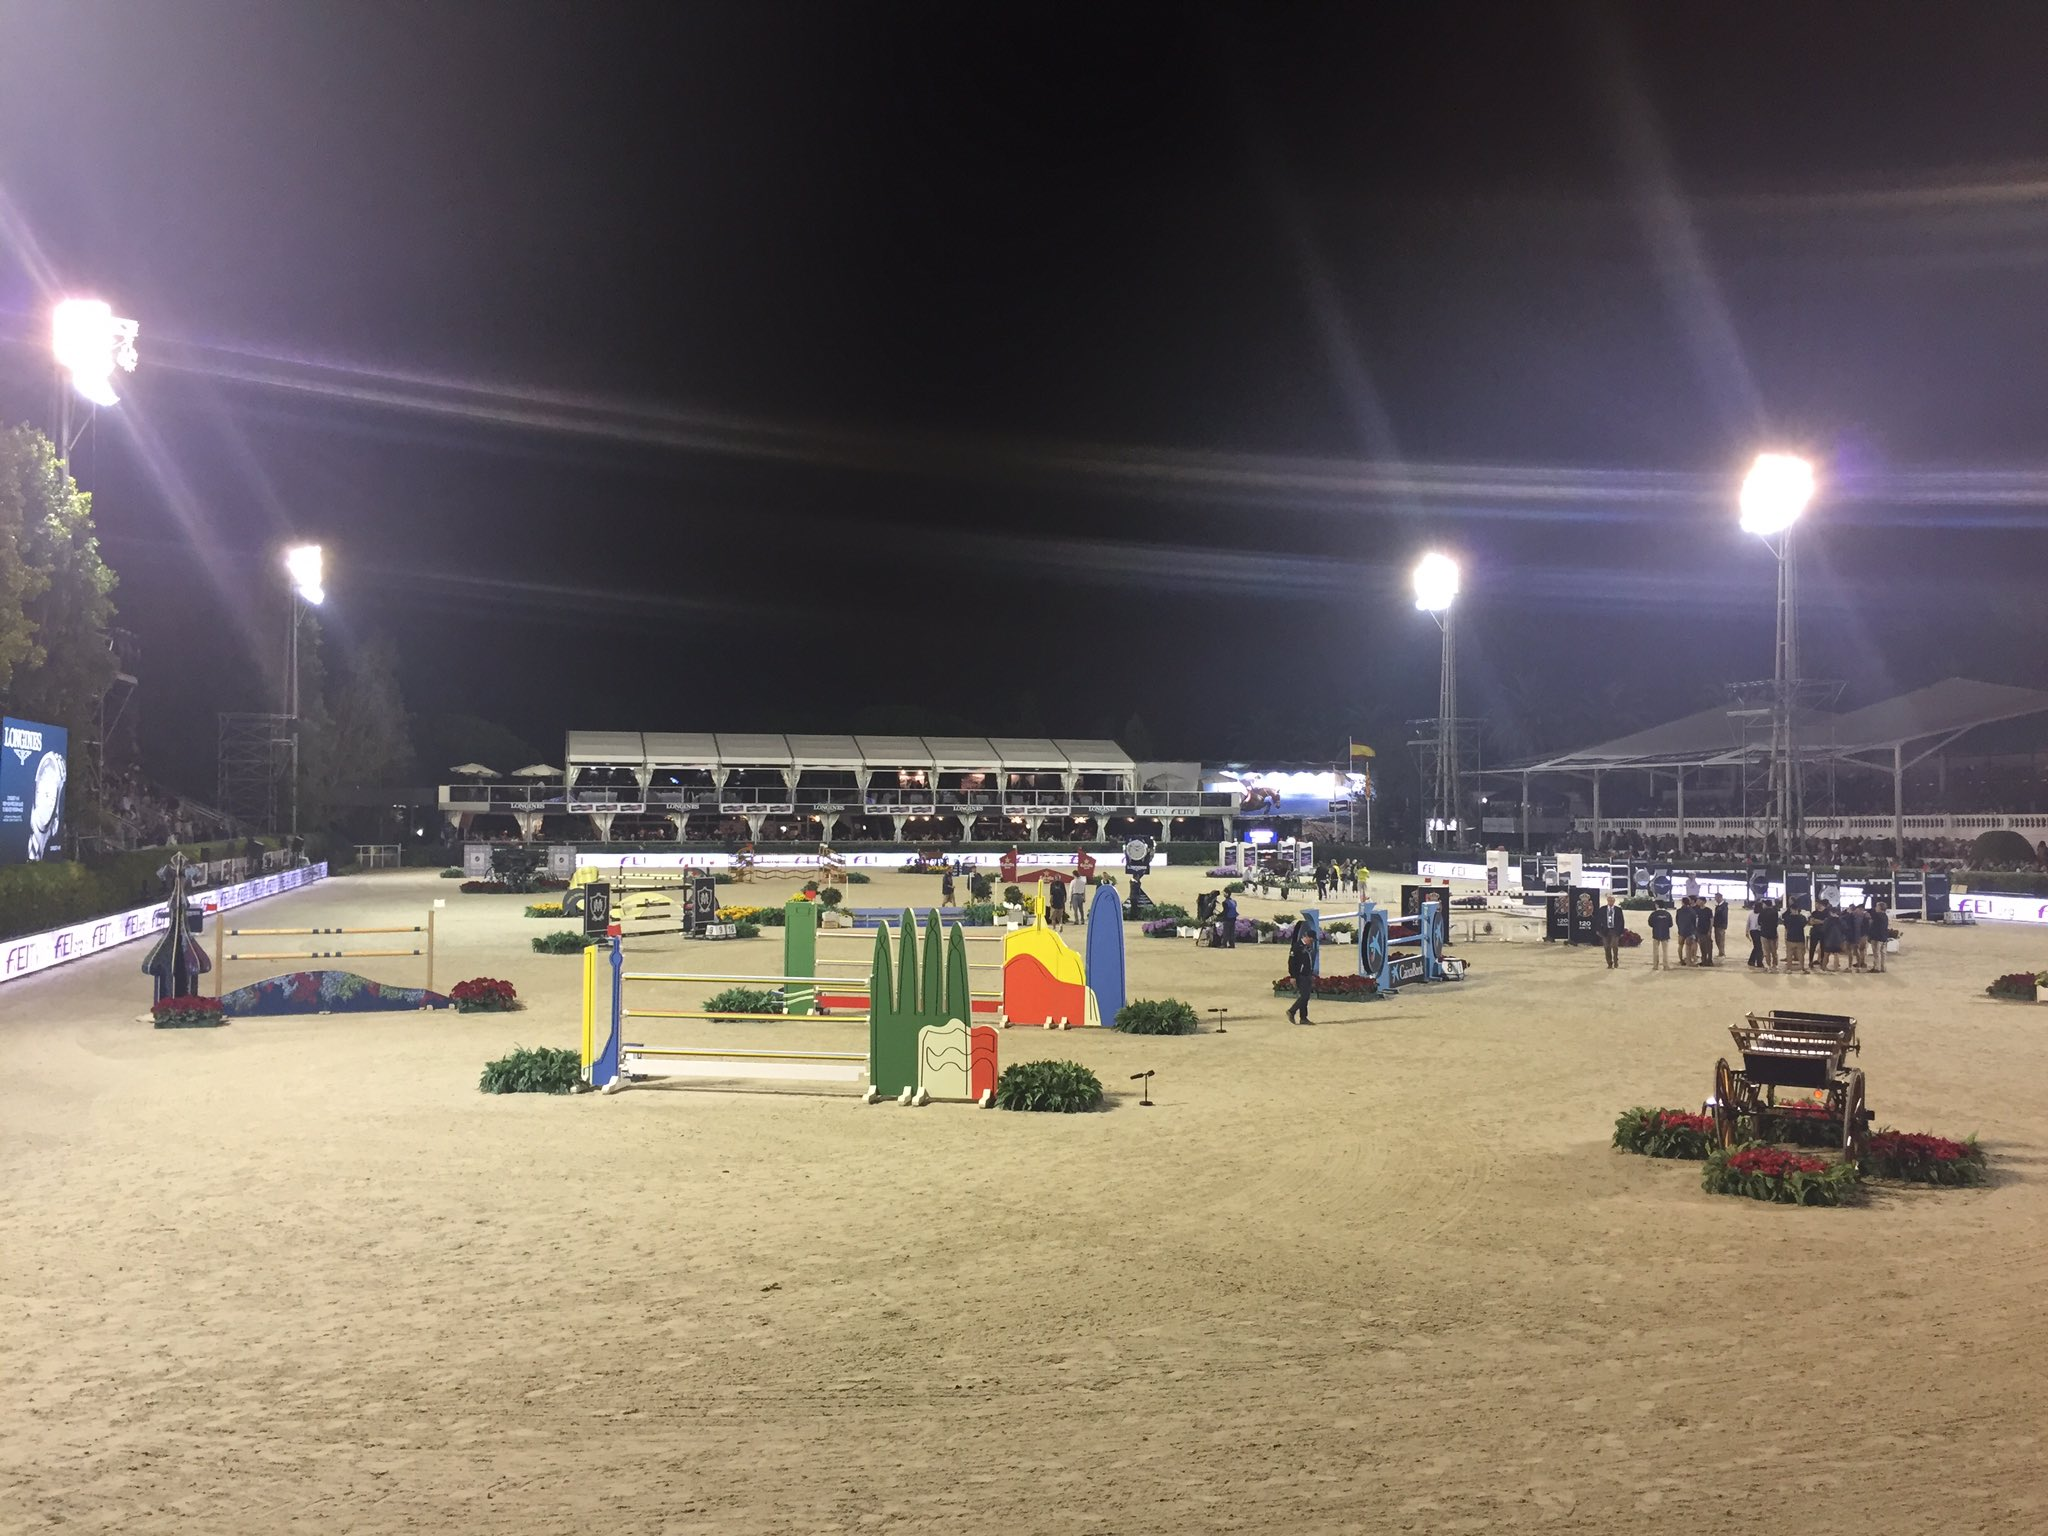 The Longines FEI Nations Cup Final will start at 22.45 h